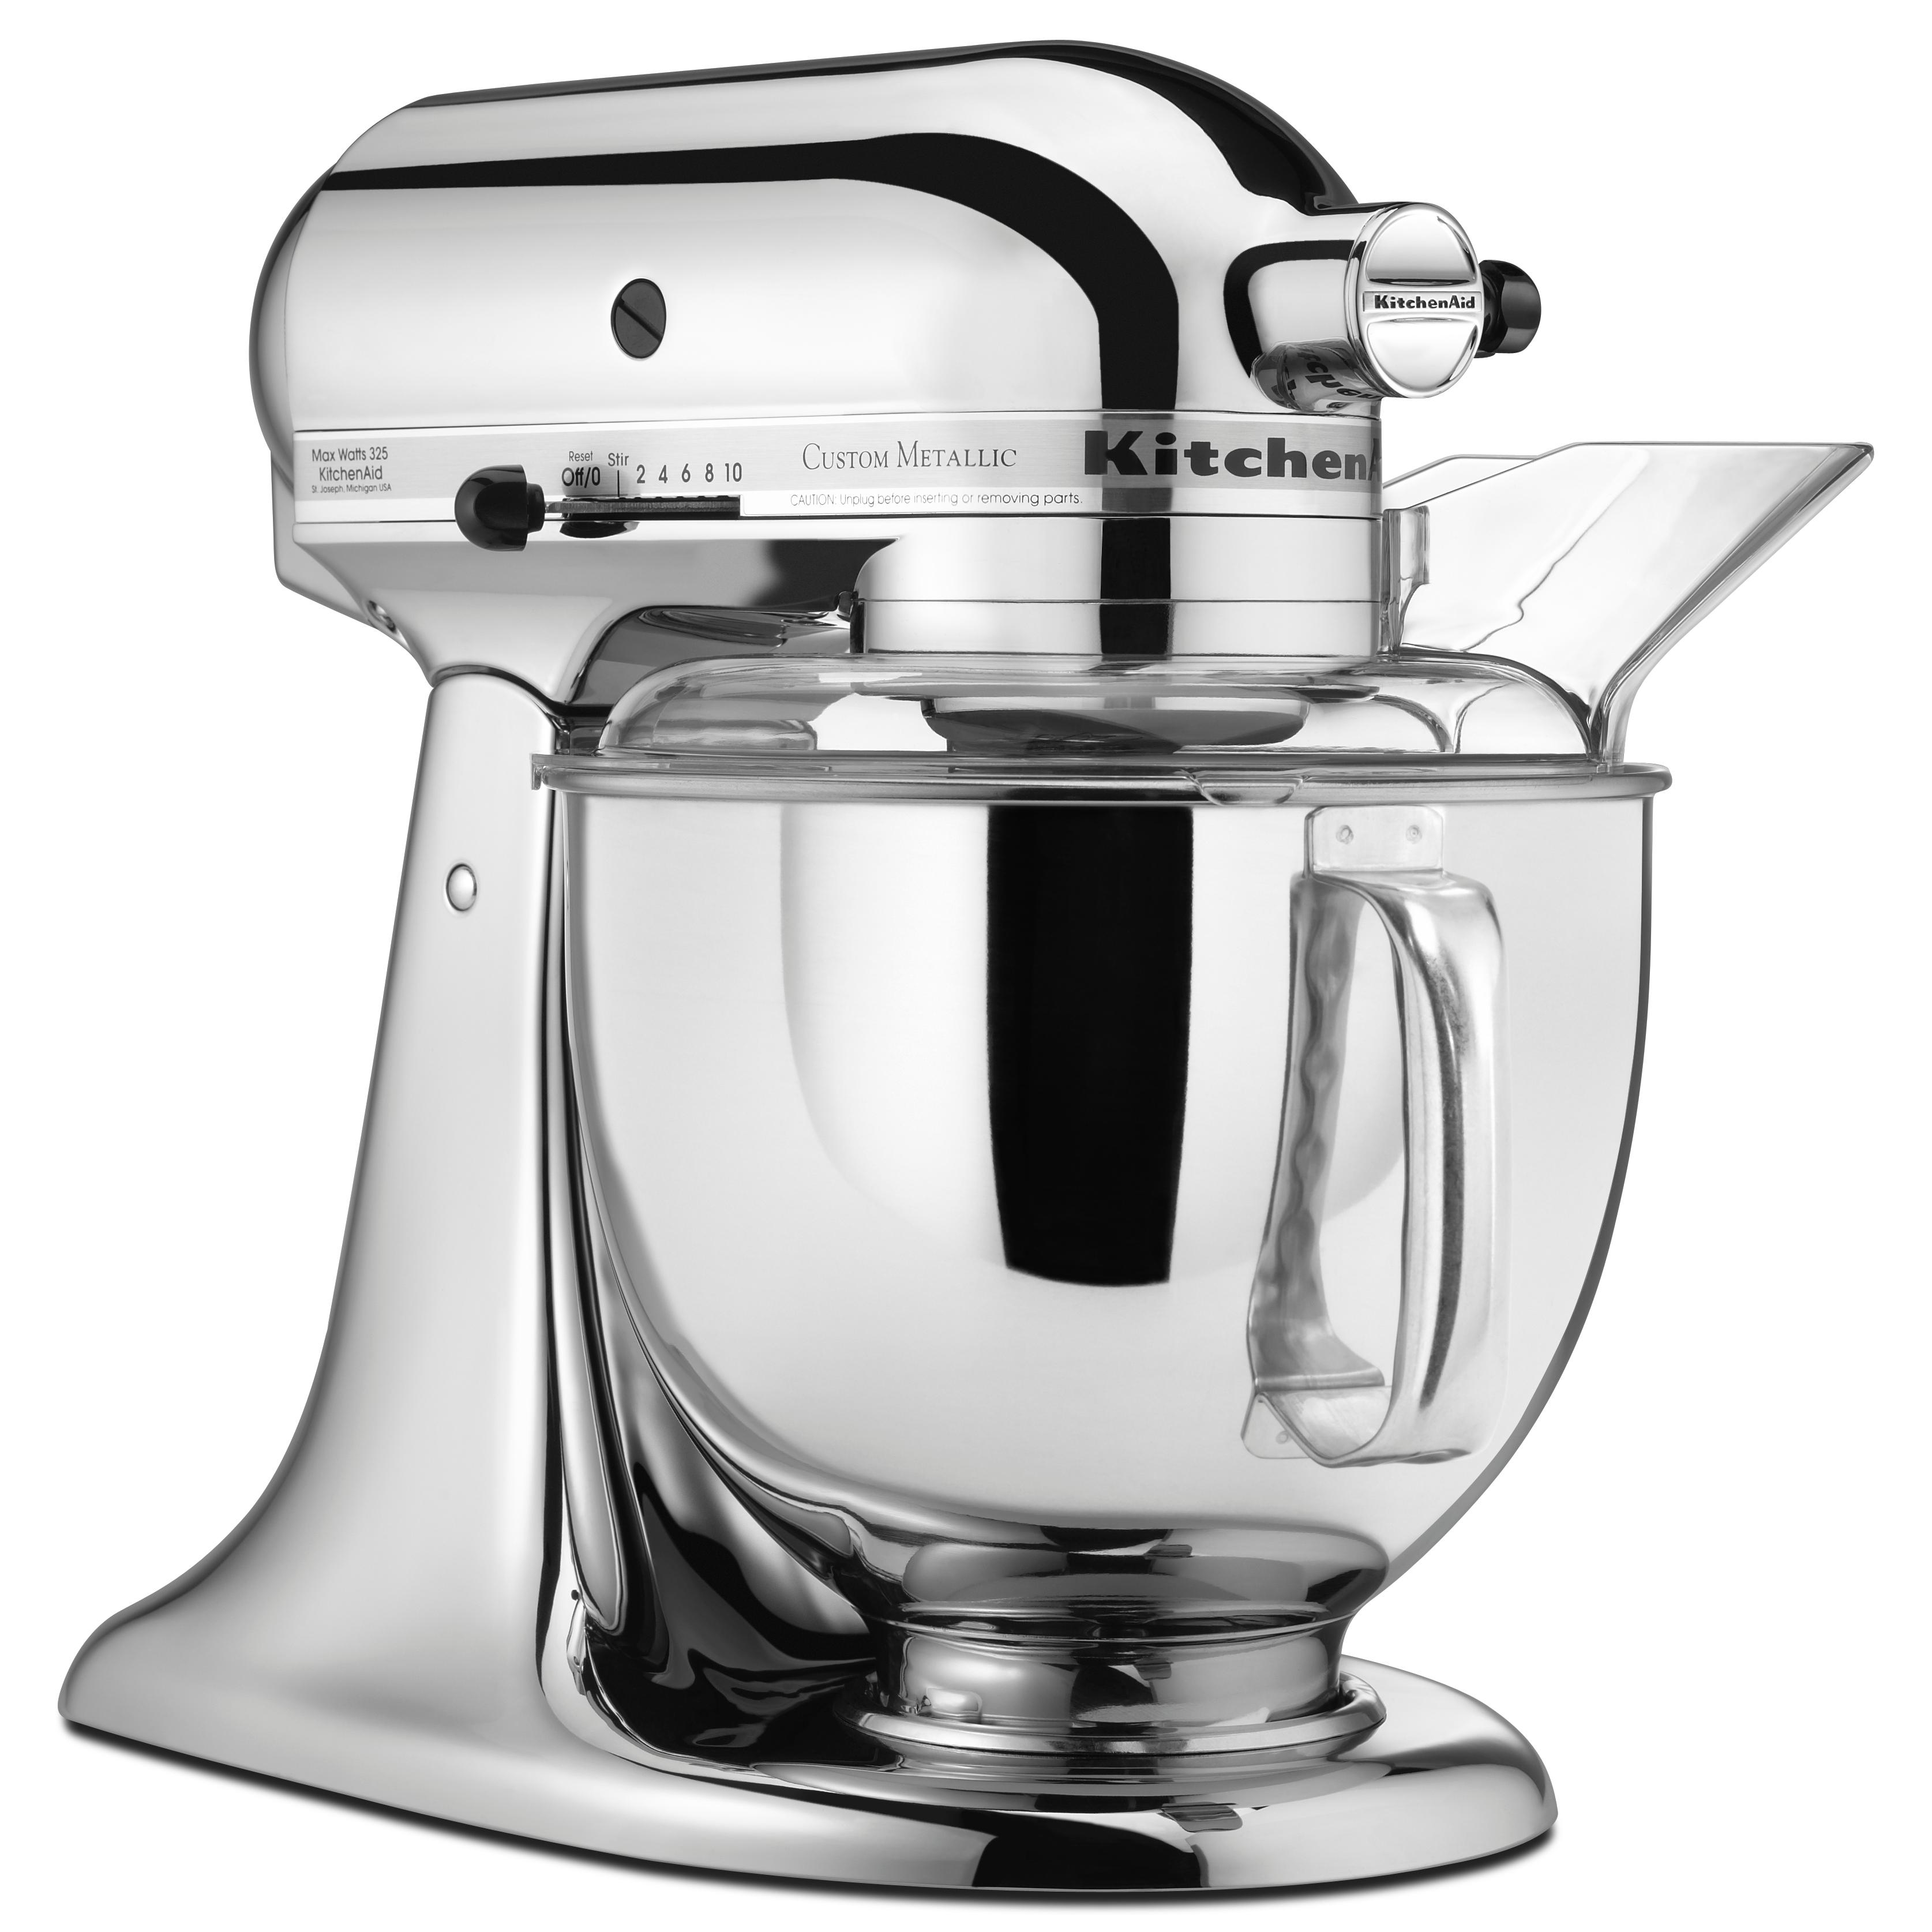 en artisan aid releases food ca full view room kitchenaid mixer processor stand press image text kitchen